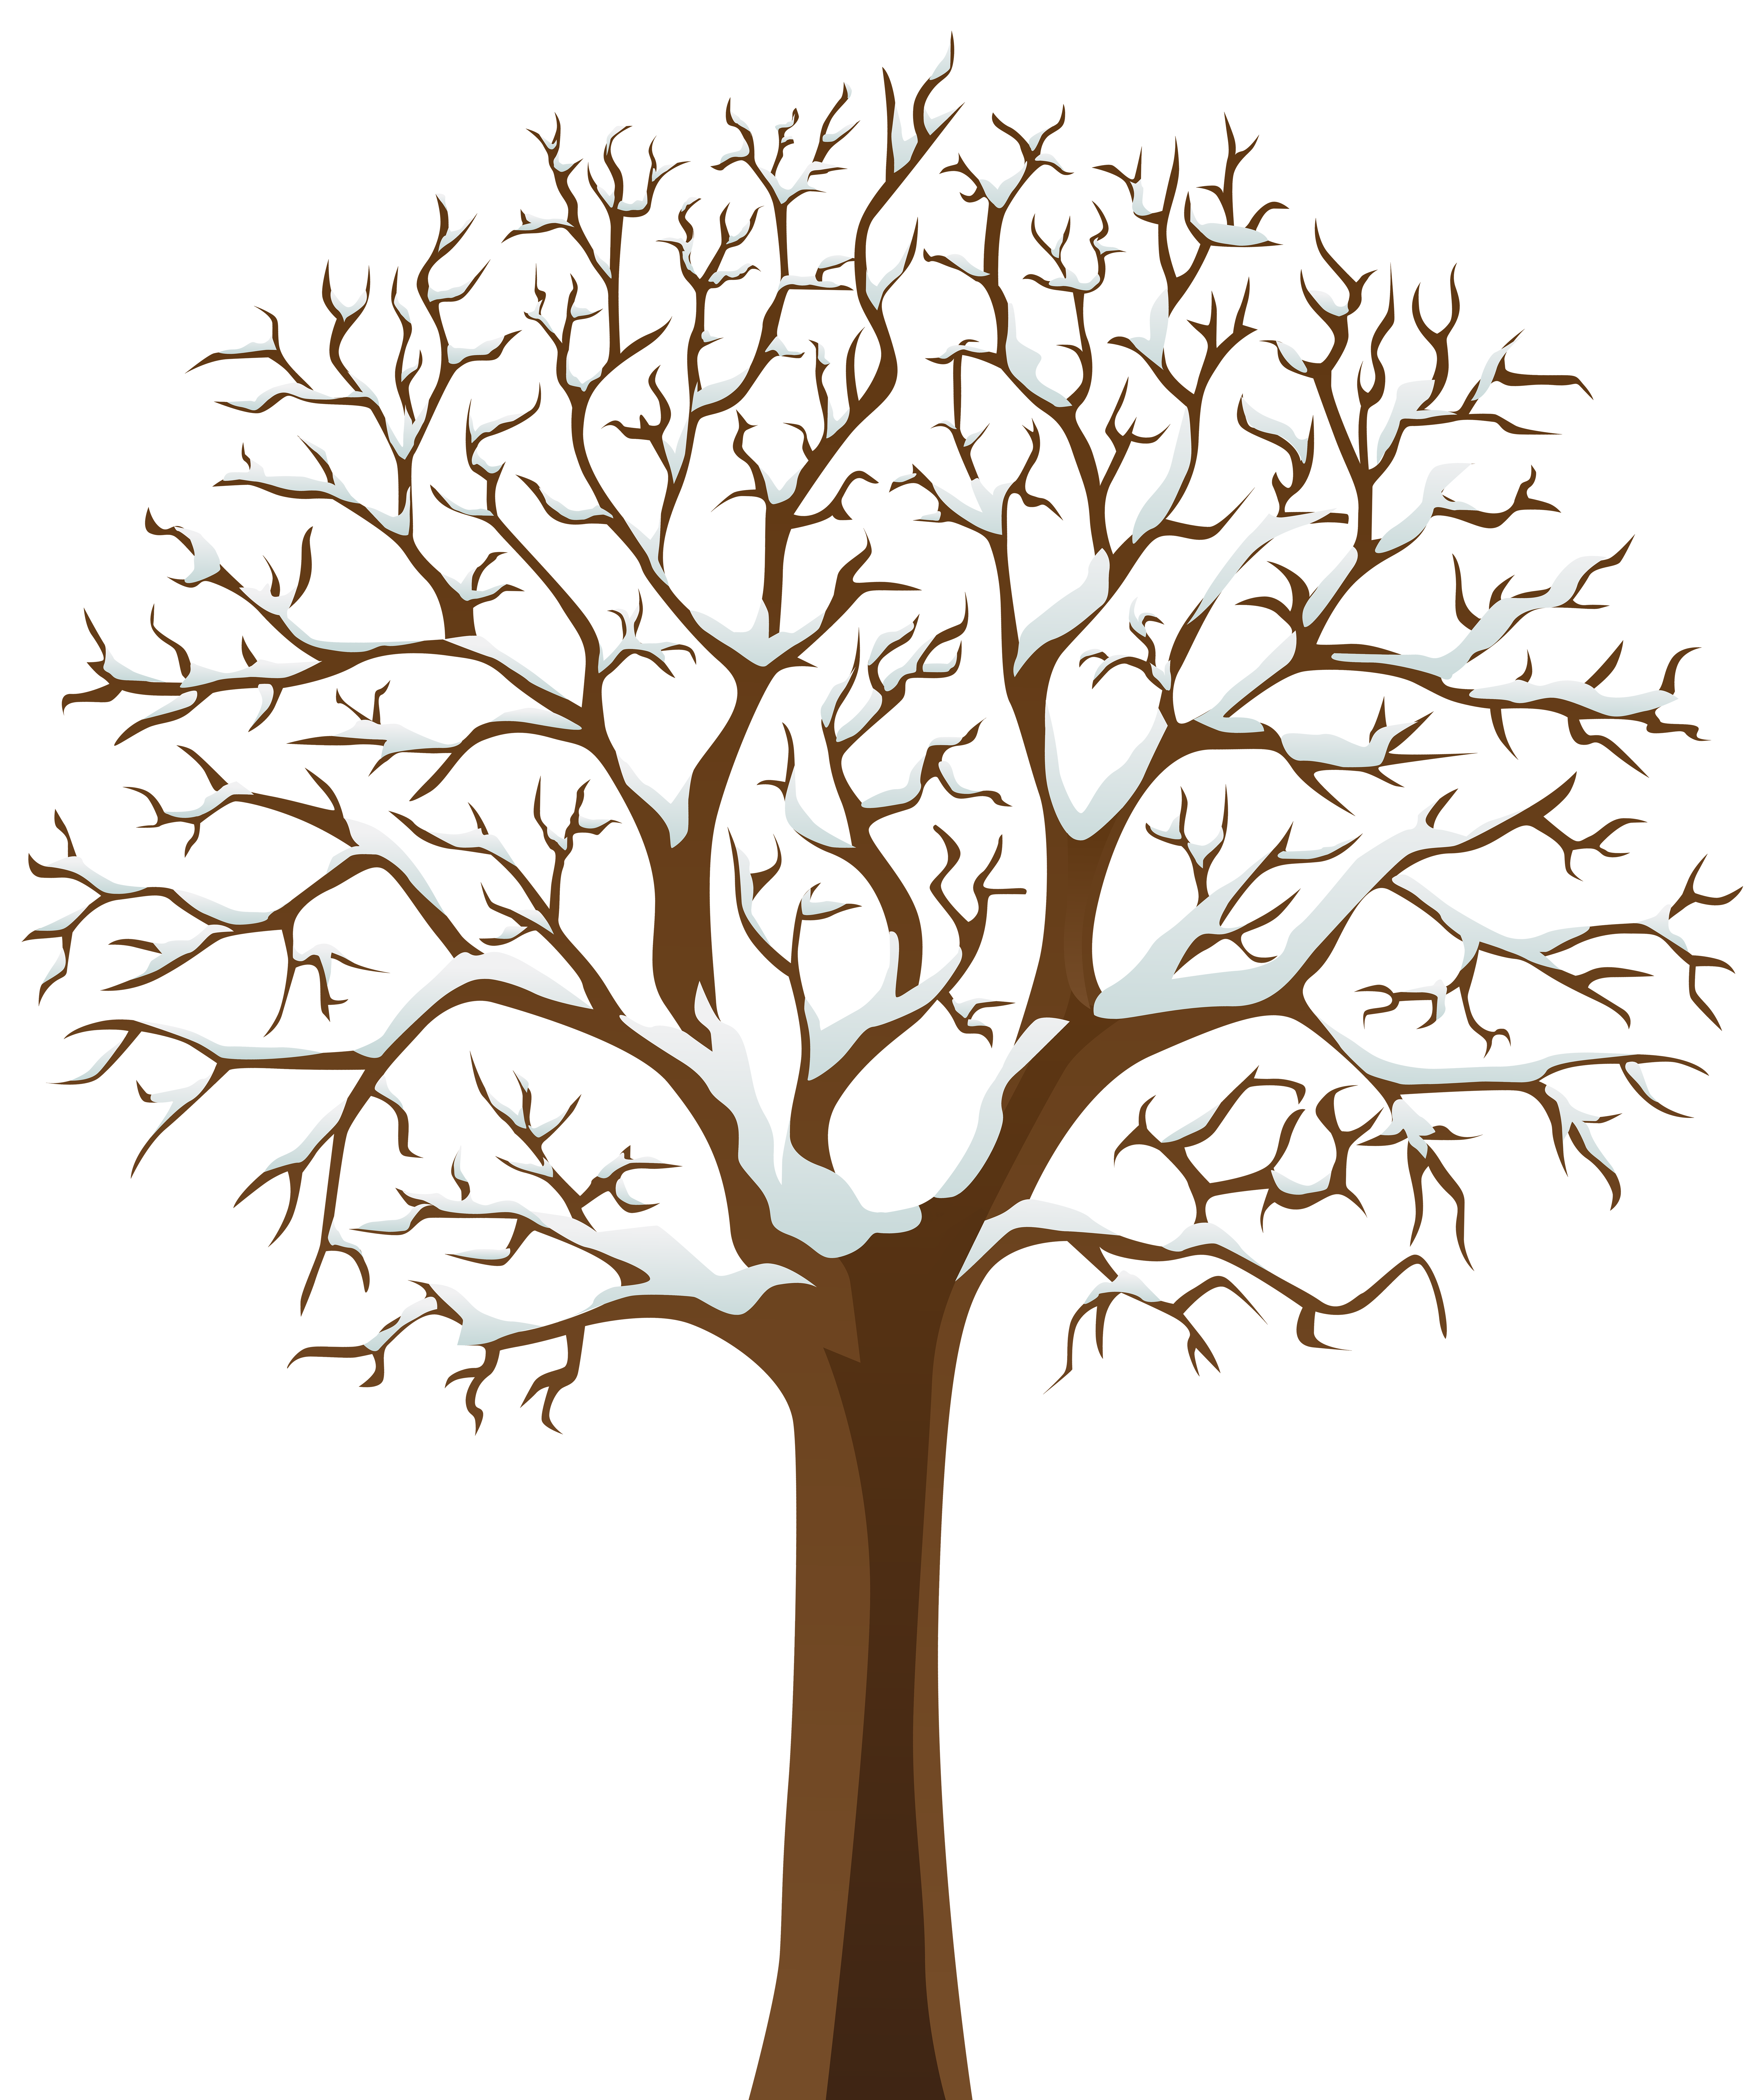 Winter Tree Drawing at GetDrawings.com | Free for personal use ...